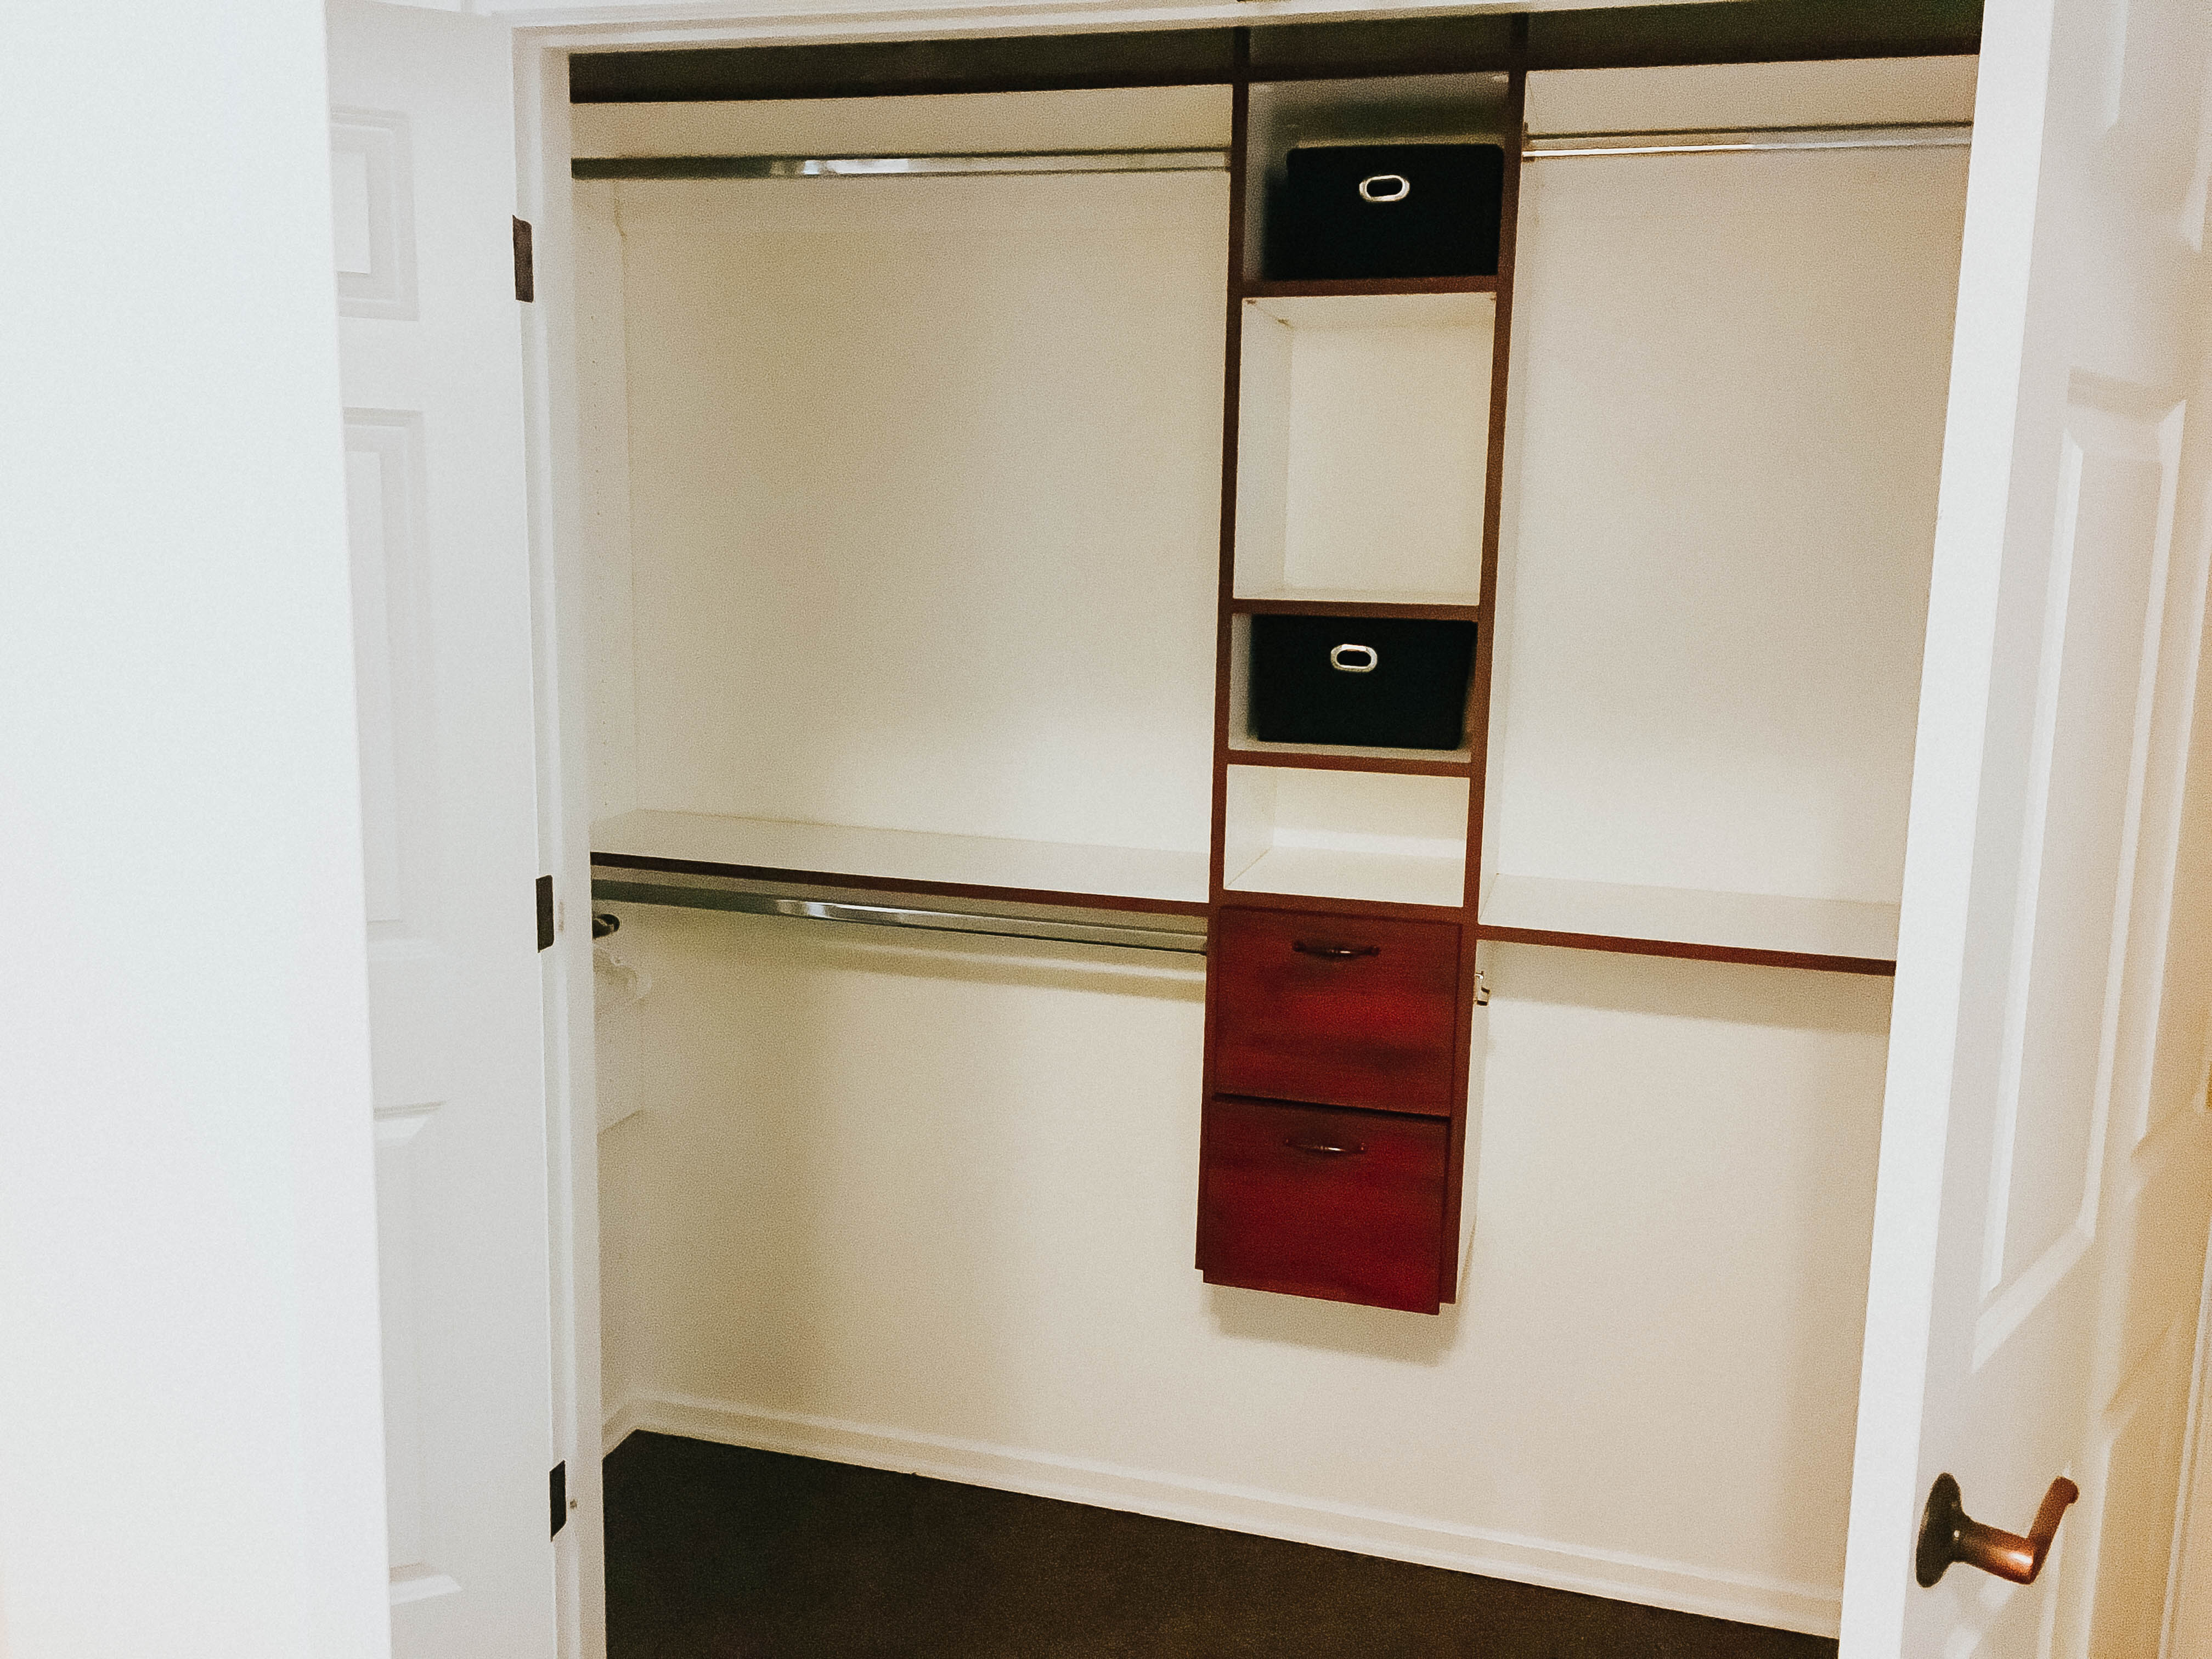 Tambree Meadows Assisted Living and Memory Care Closet